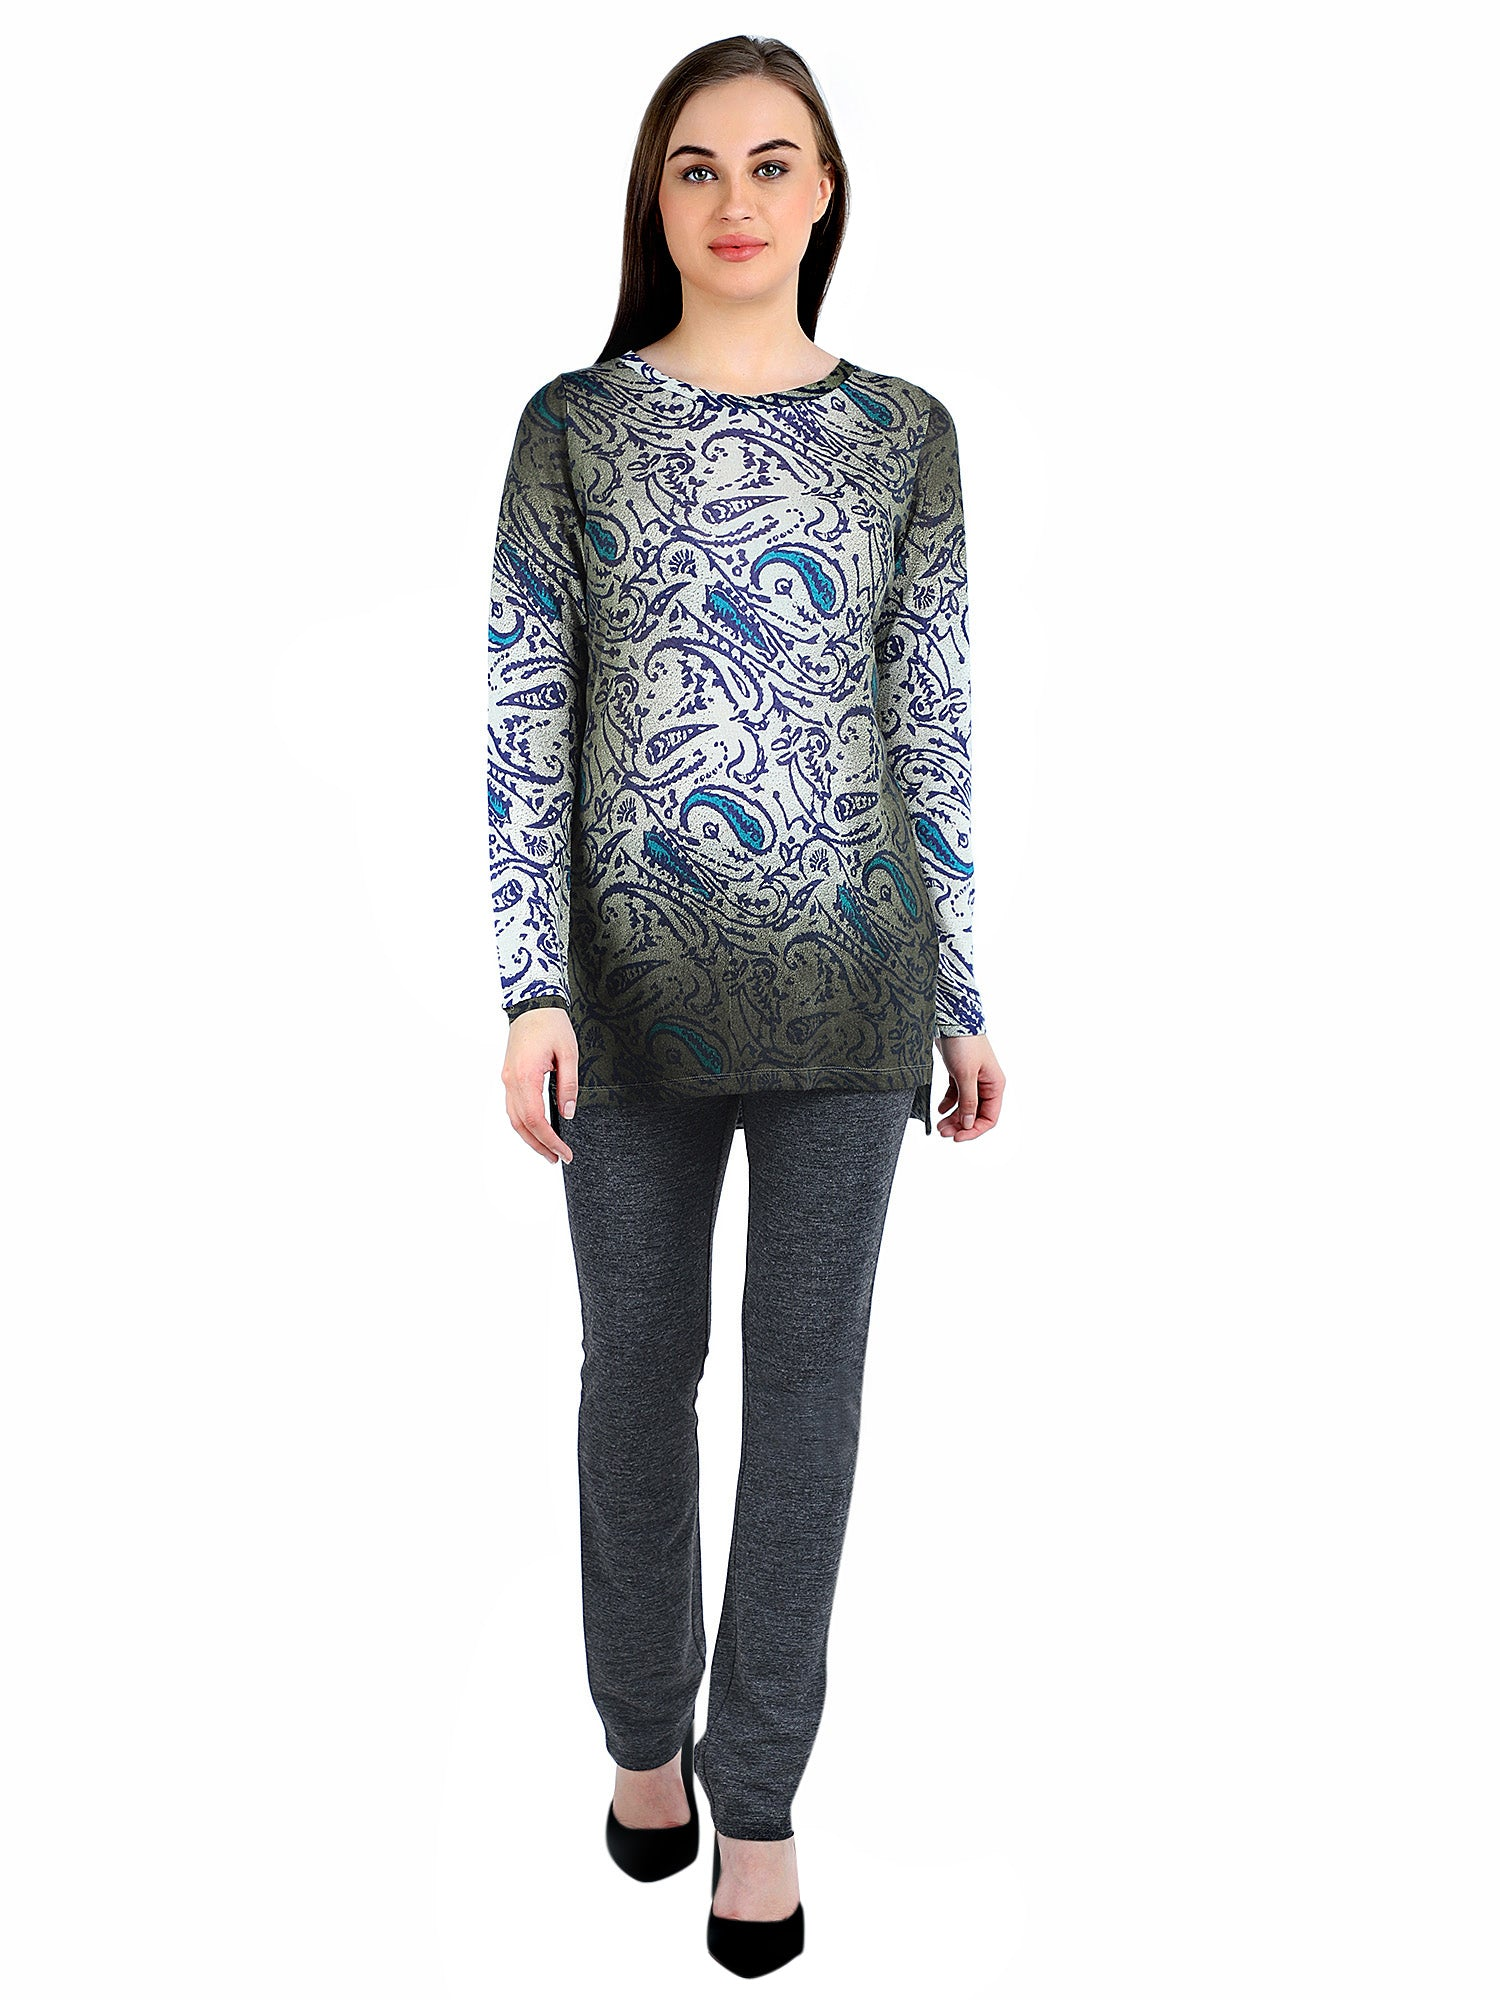 Pashma Blue Silk Wool Cashmere Boat Neck Tunic with paisley print.